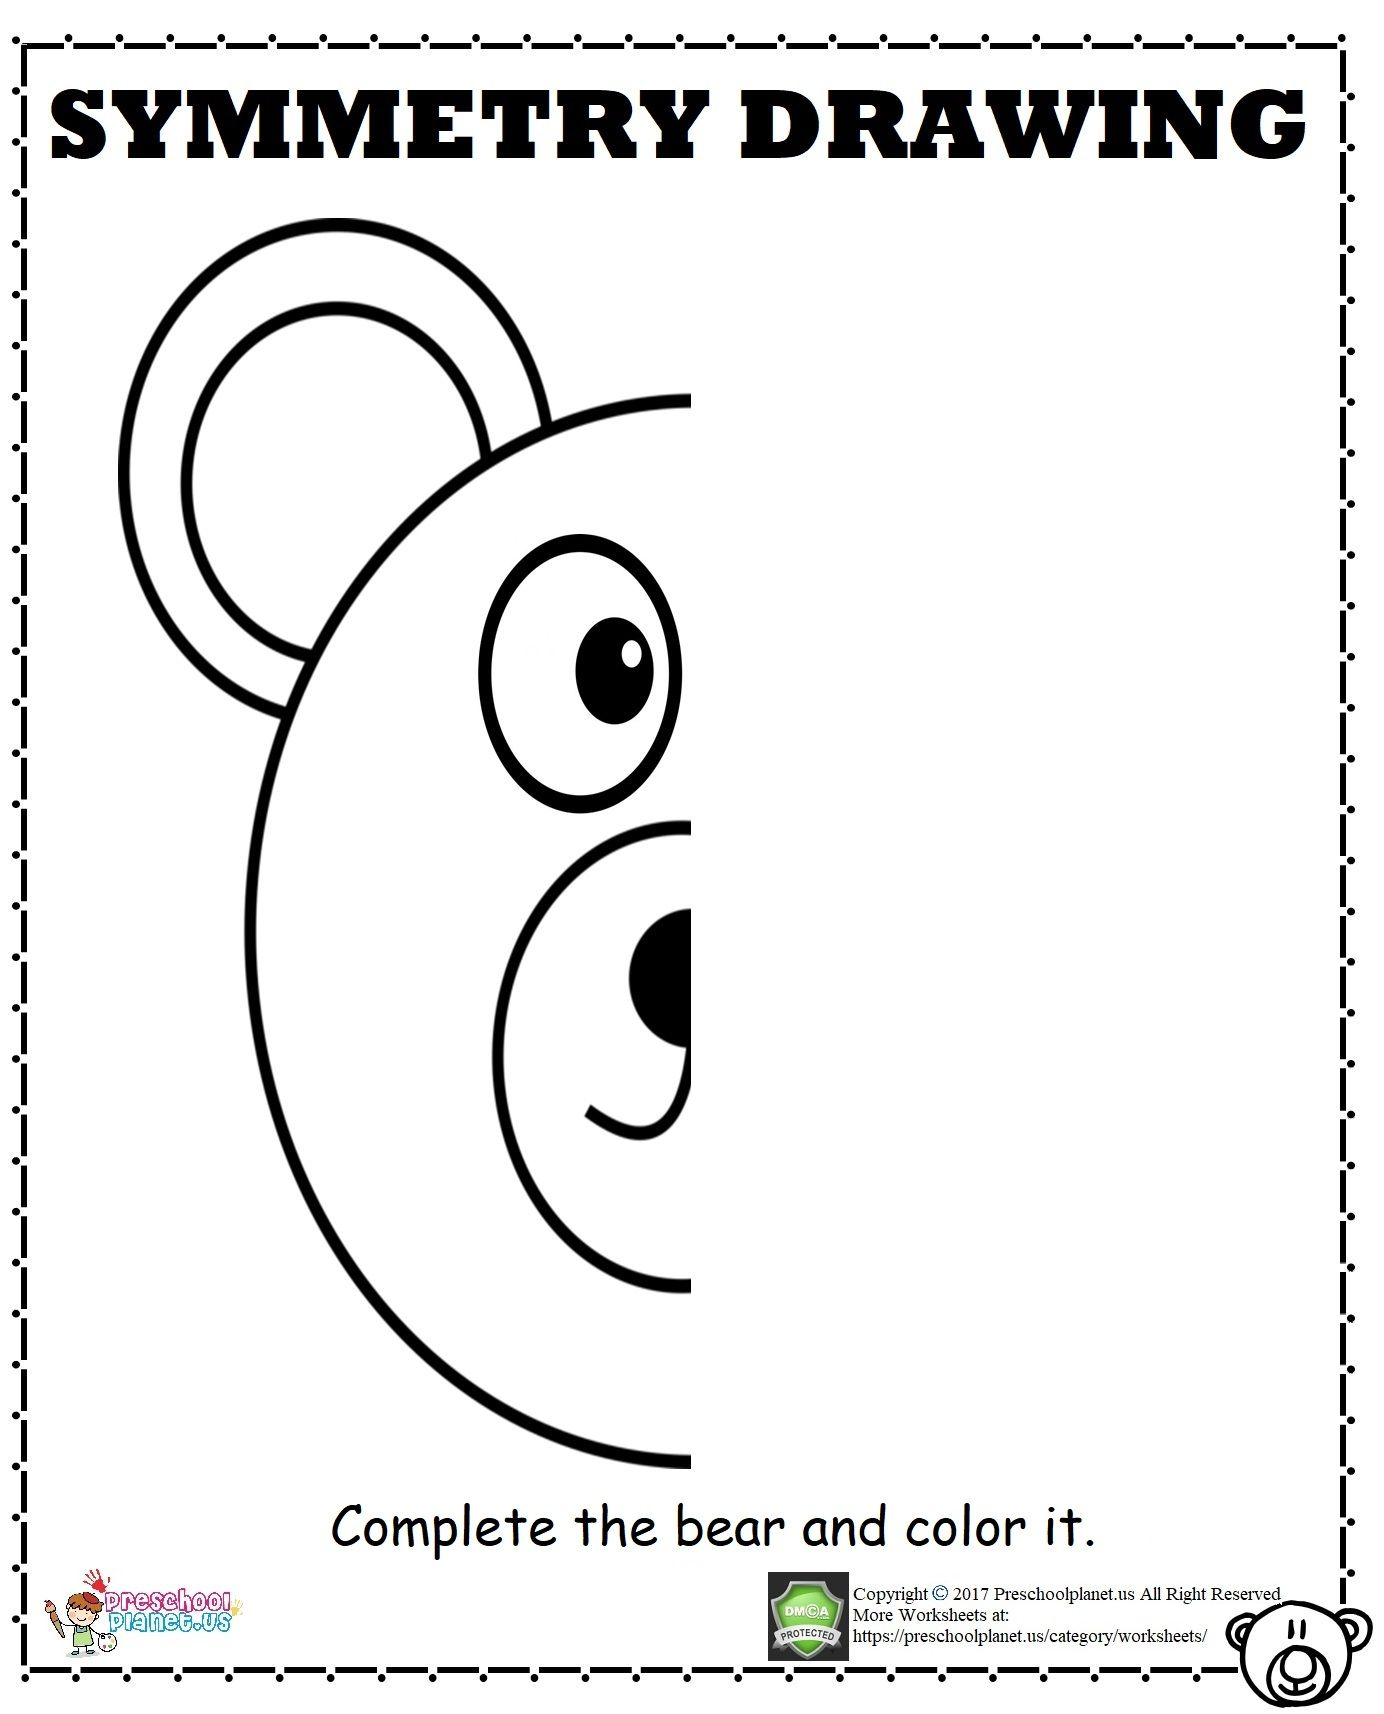 Bear Symmetry Worksheet Calisma Tablolari Anaokulu Sinif